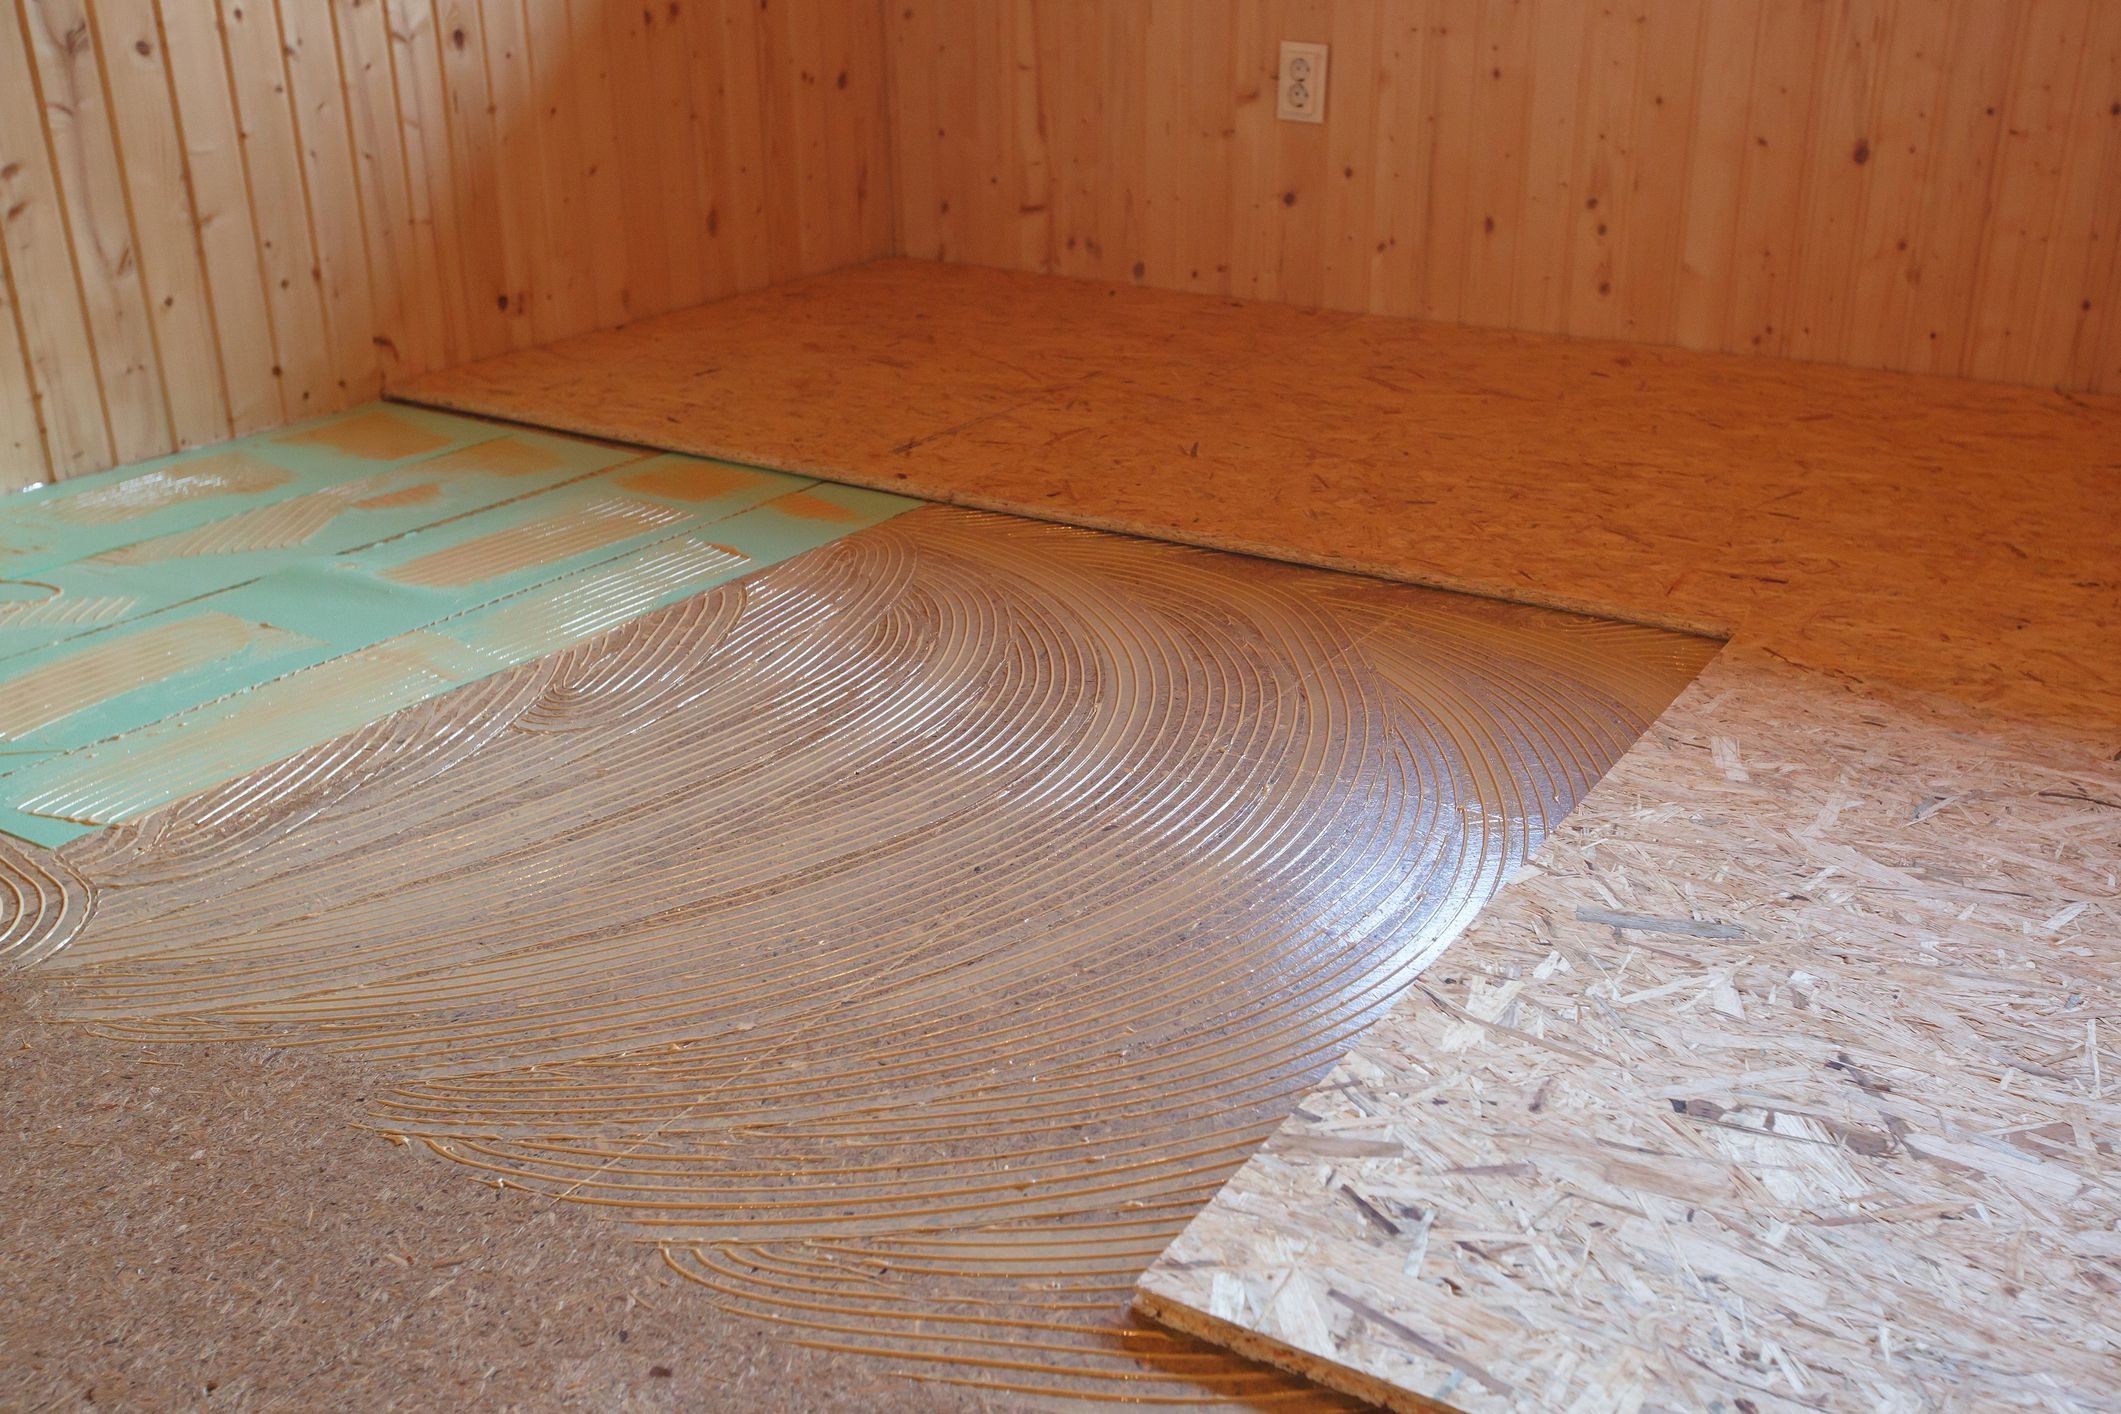 michigan hardwood flooring contractors of types of subfloor materials in construction projects with gettyimages 892047030 5af5f46fc064710036eebd22